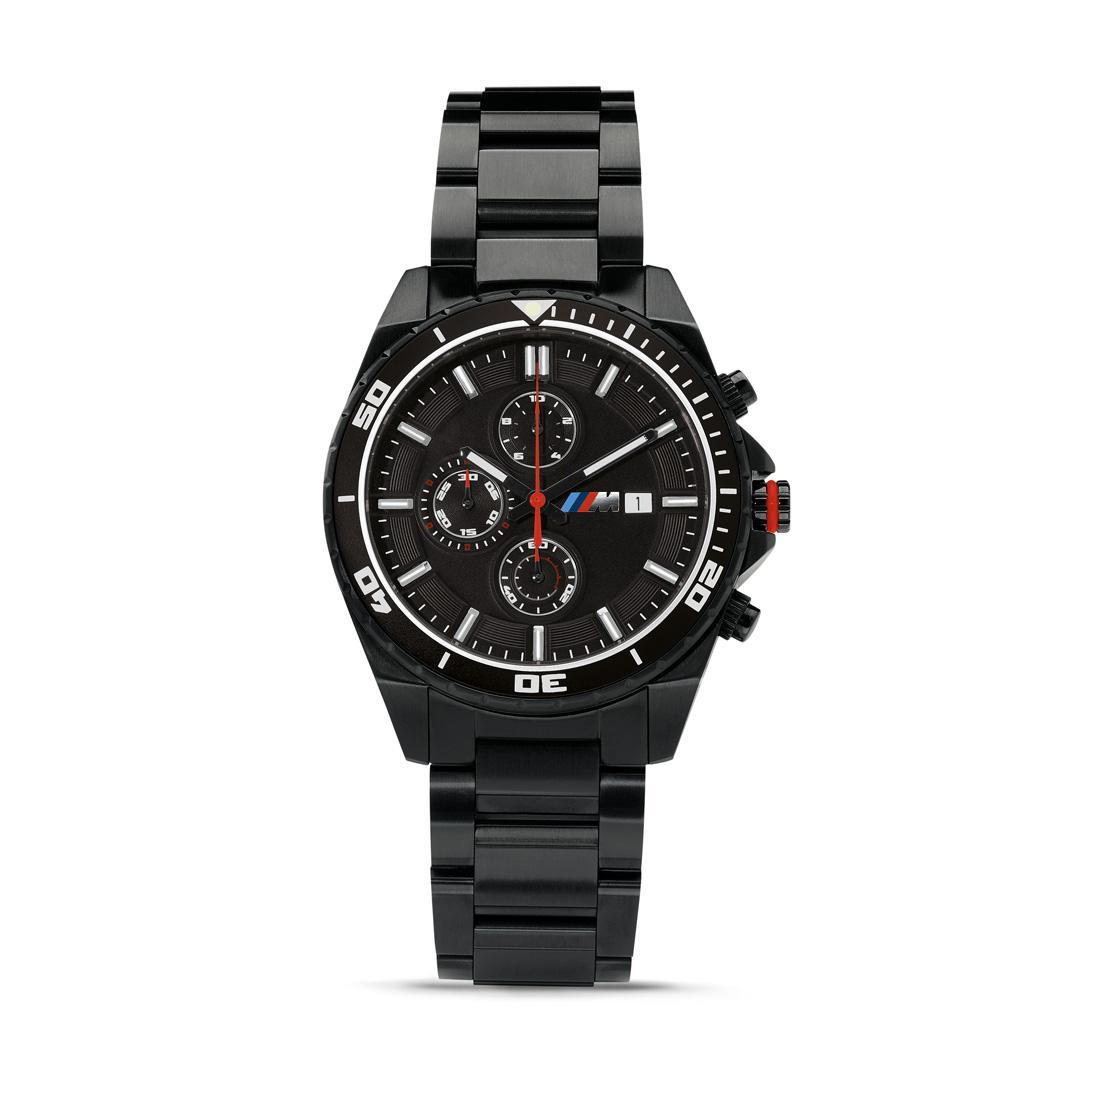 BMW Men's M Chronograph Watch